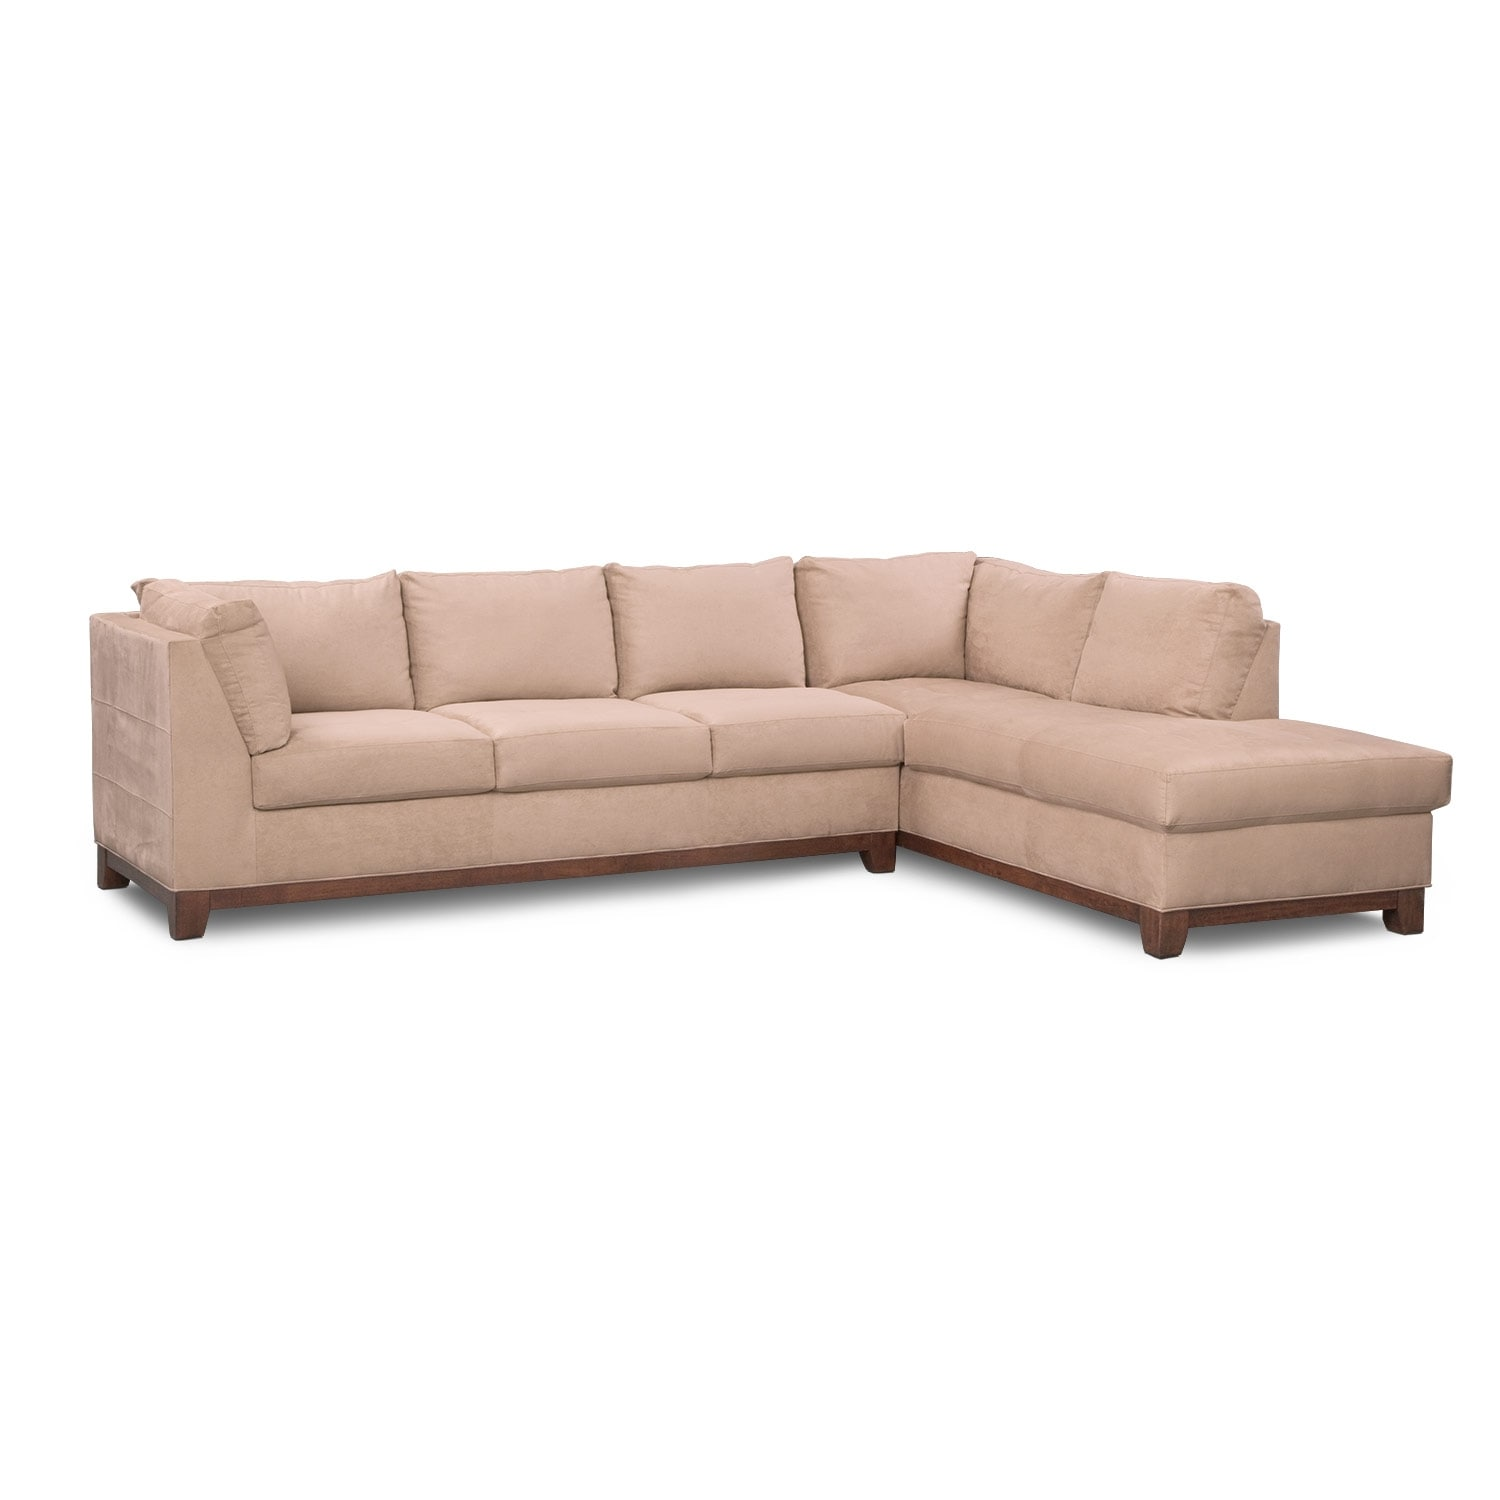 Soho 2-Piece Sectional with Right-Facing Chaise - Cobblestone ...